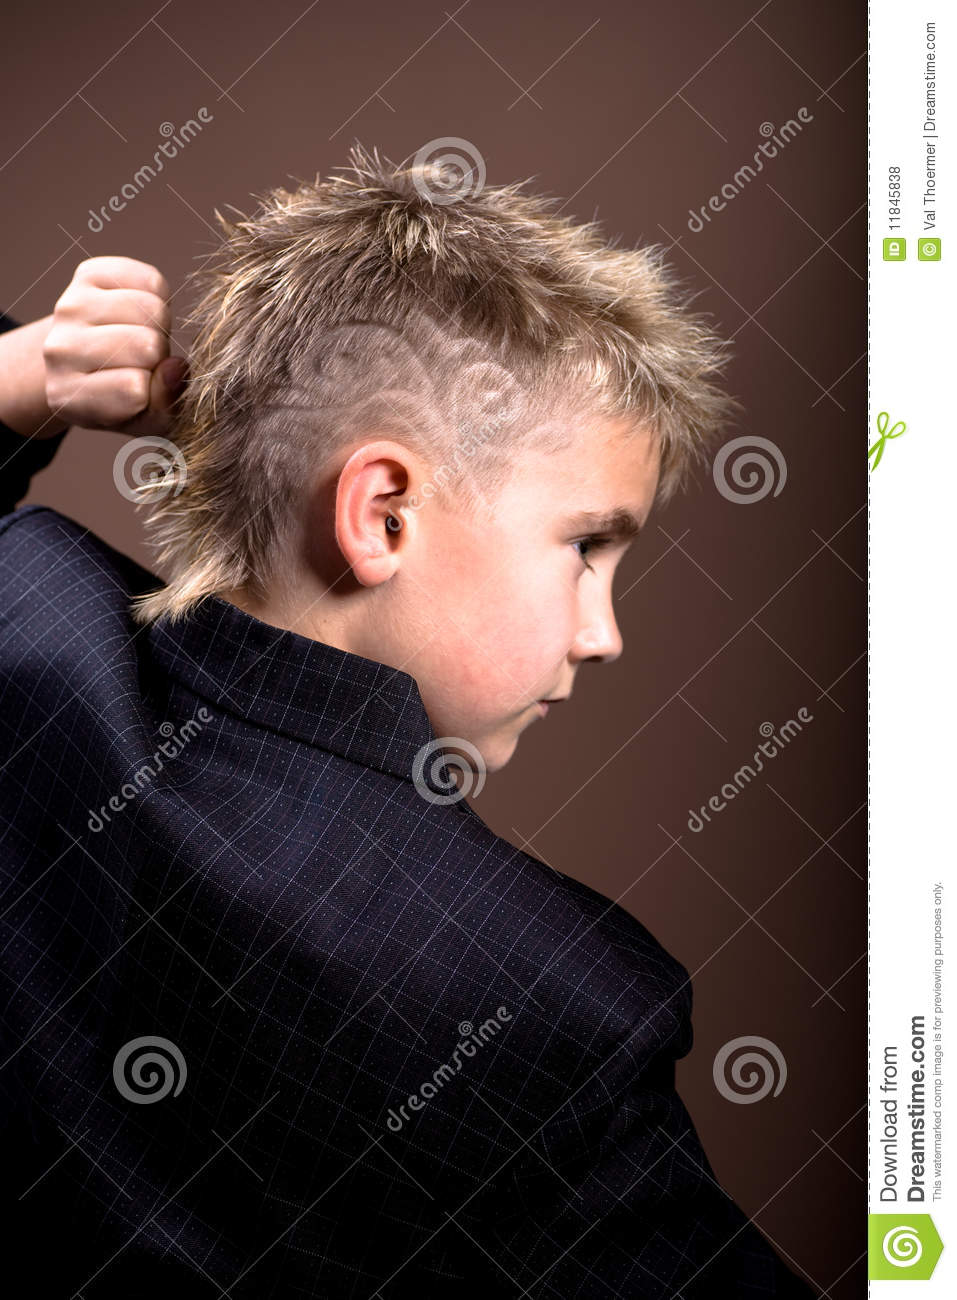 Boys Hairstyle Stock Photo Image Of Face Male Hairstyle 11845838